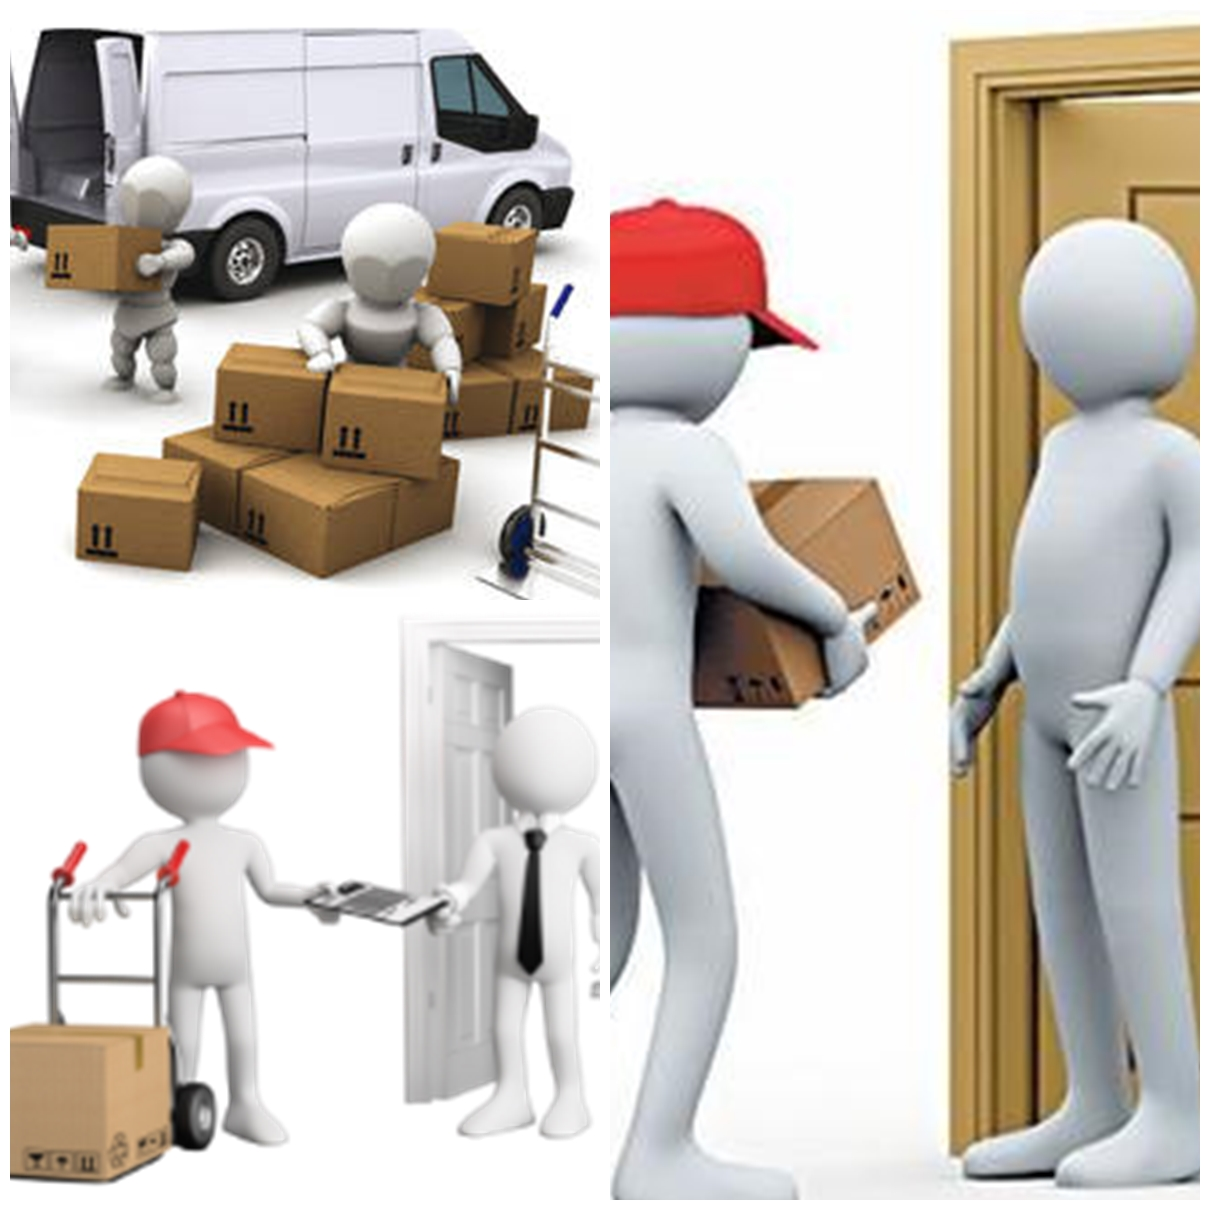 DOOR TO DOOR COURIER DELIVERY SERVICES NOW ALSO AVAILABLE AT AN ADDITIONAL CHARGE  (Freight charges as per size and kg of the package- call our store for a quote today 0315009998) door to door delivery of ur gift ghd cloudnine bhe corioliss hair irons delivery directly to your home safe